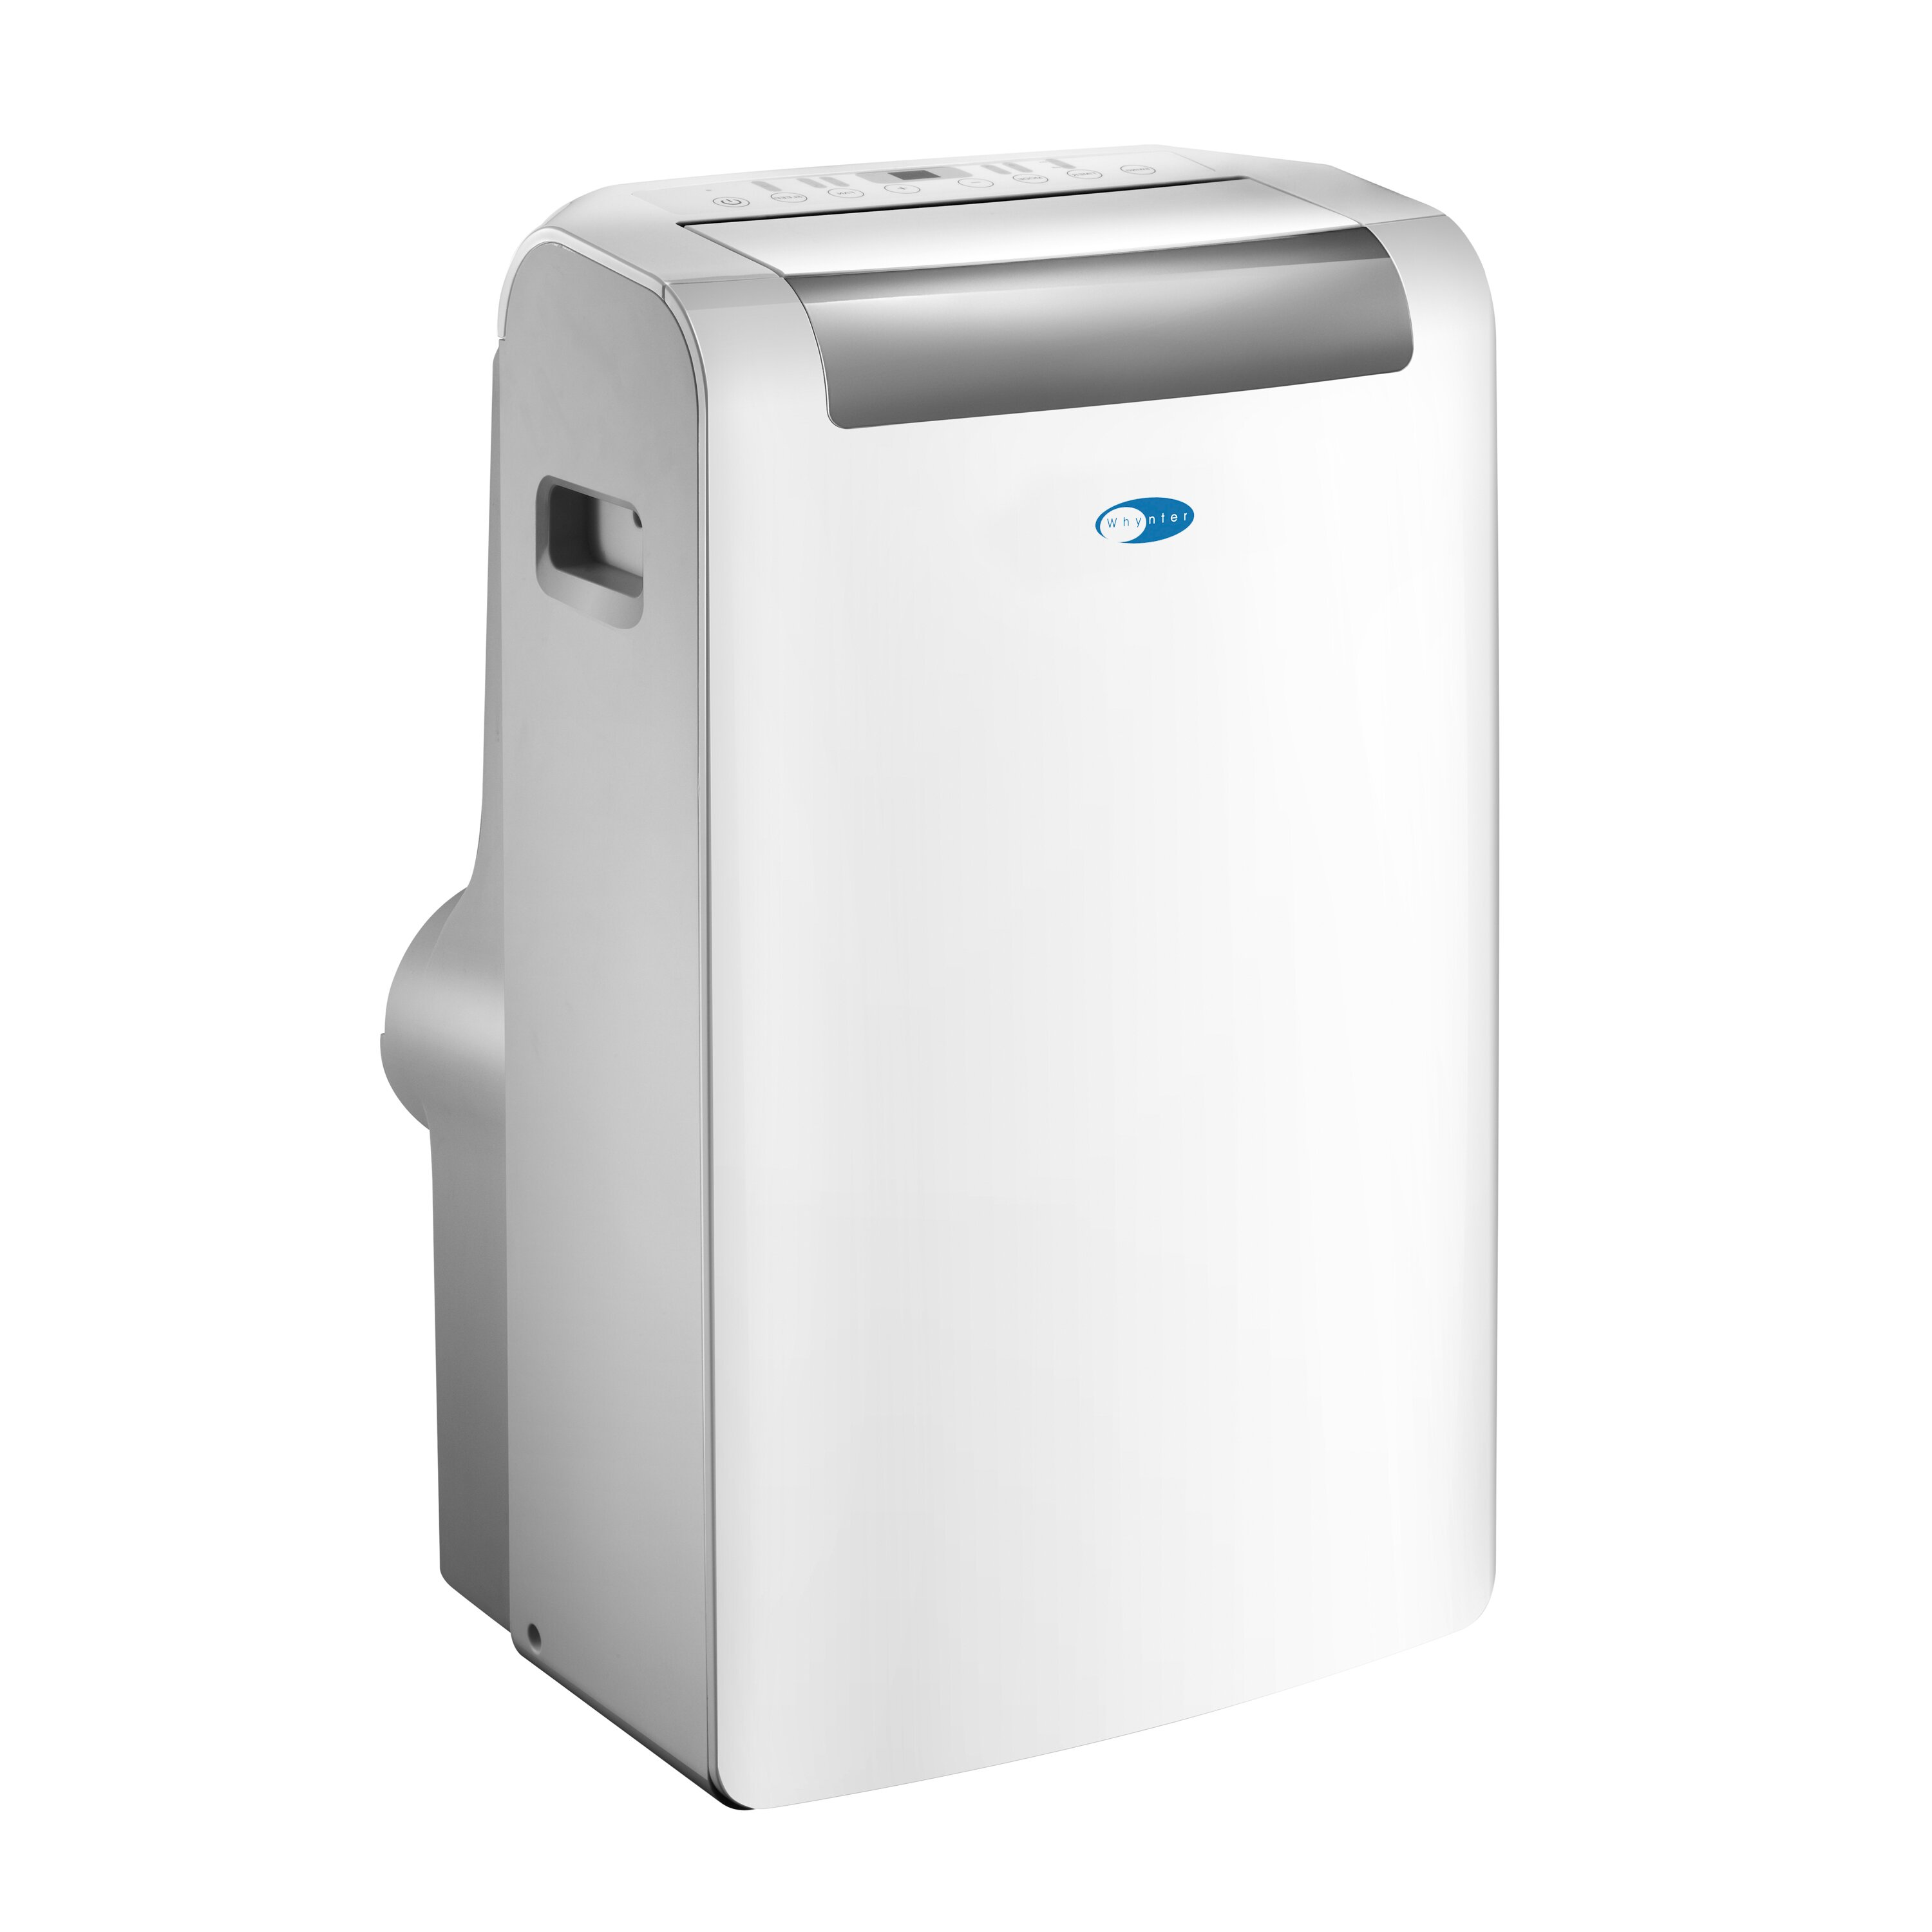 #0068A9 Whynter 14000 BTU Portable Air Conditioner & Reviews Wayfair Most Recent 13510 Portable Air Conditioner Ratings image with 3000x3000 px on helpvideos.info - Air Conditioners, Air Coolers and more